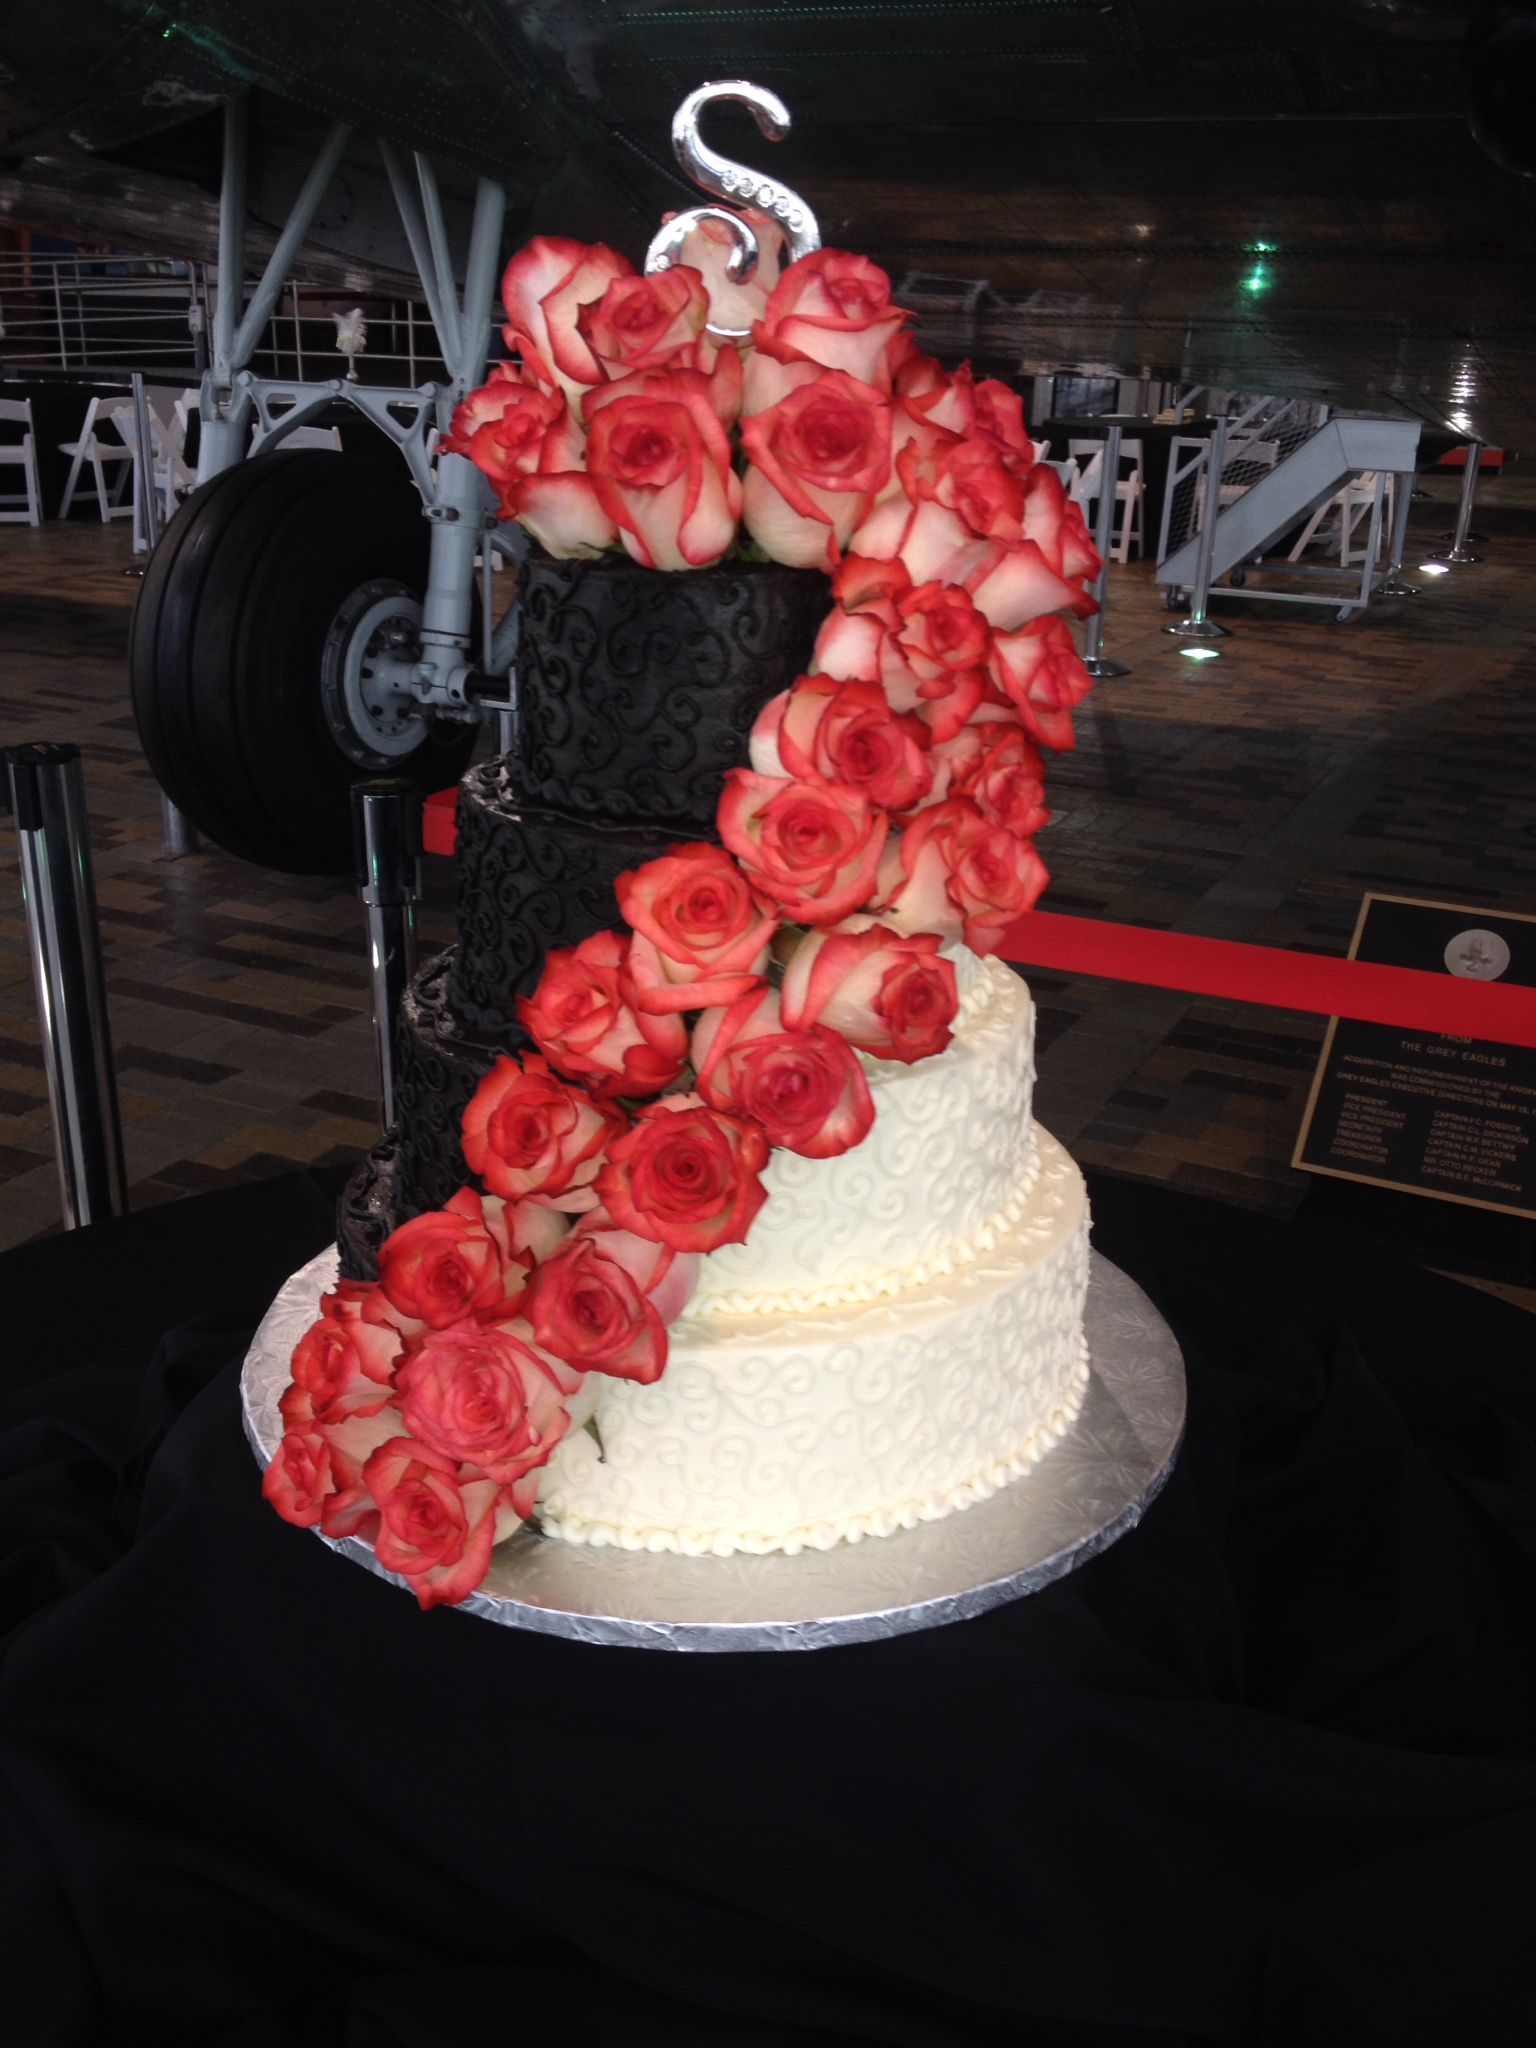 Cascading Roses Wedding Cake By Celebrity Bakery Could Save Your Marriage